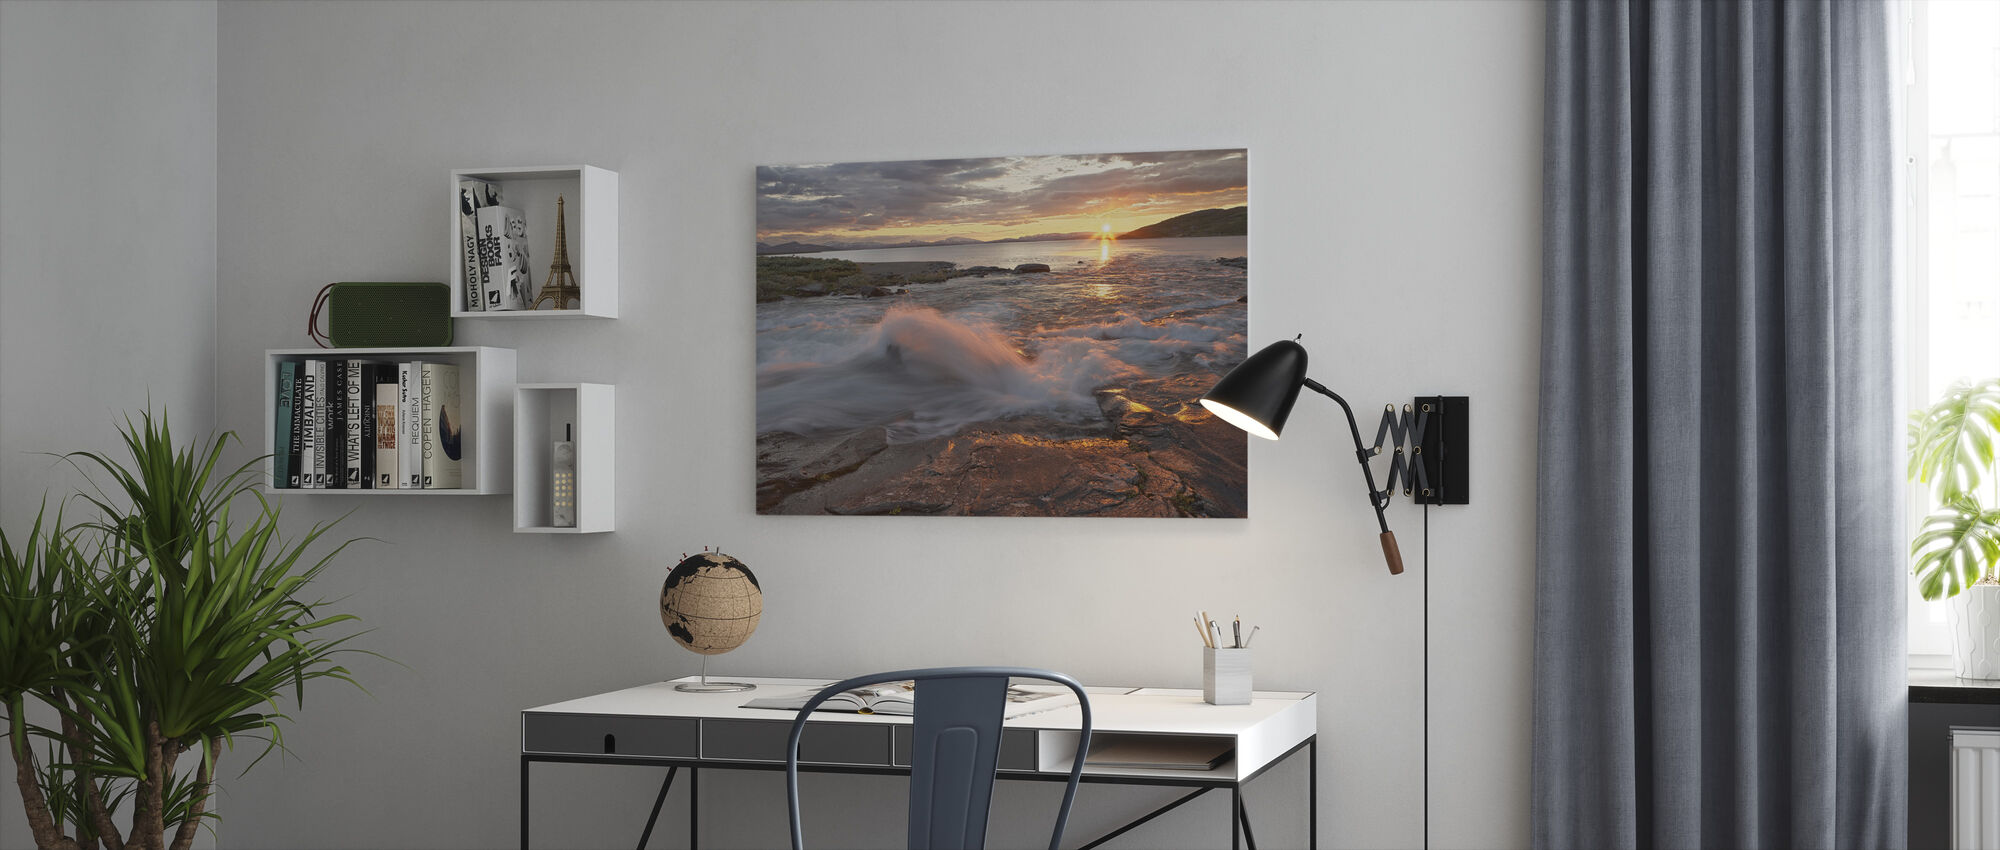 Padjelanta Archipelago, Sweden - Canvas print - Office